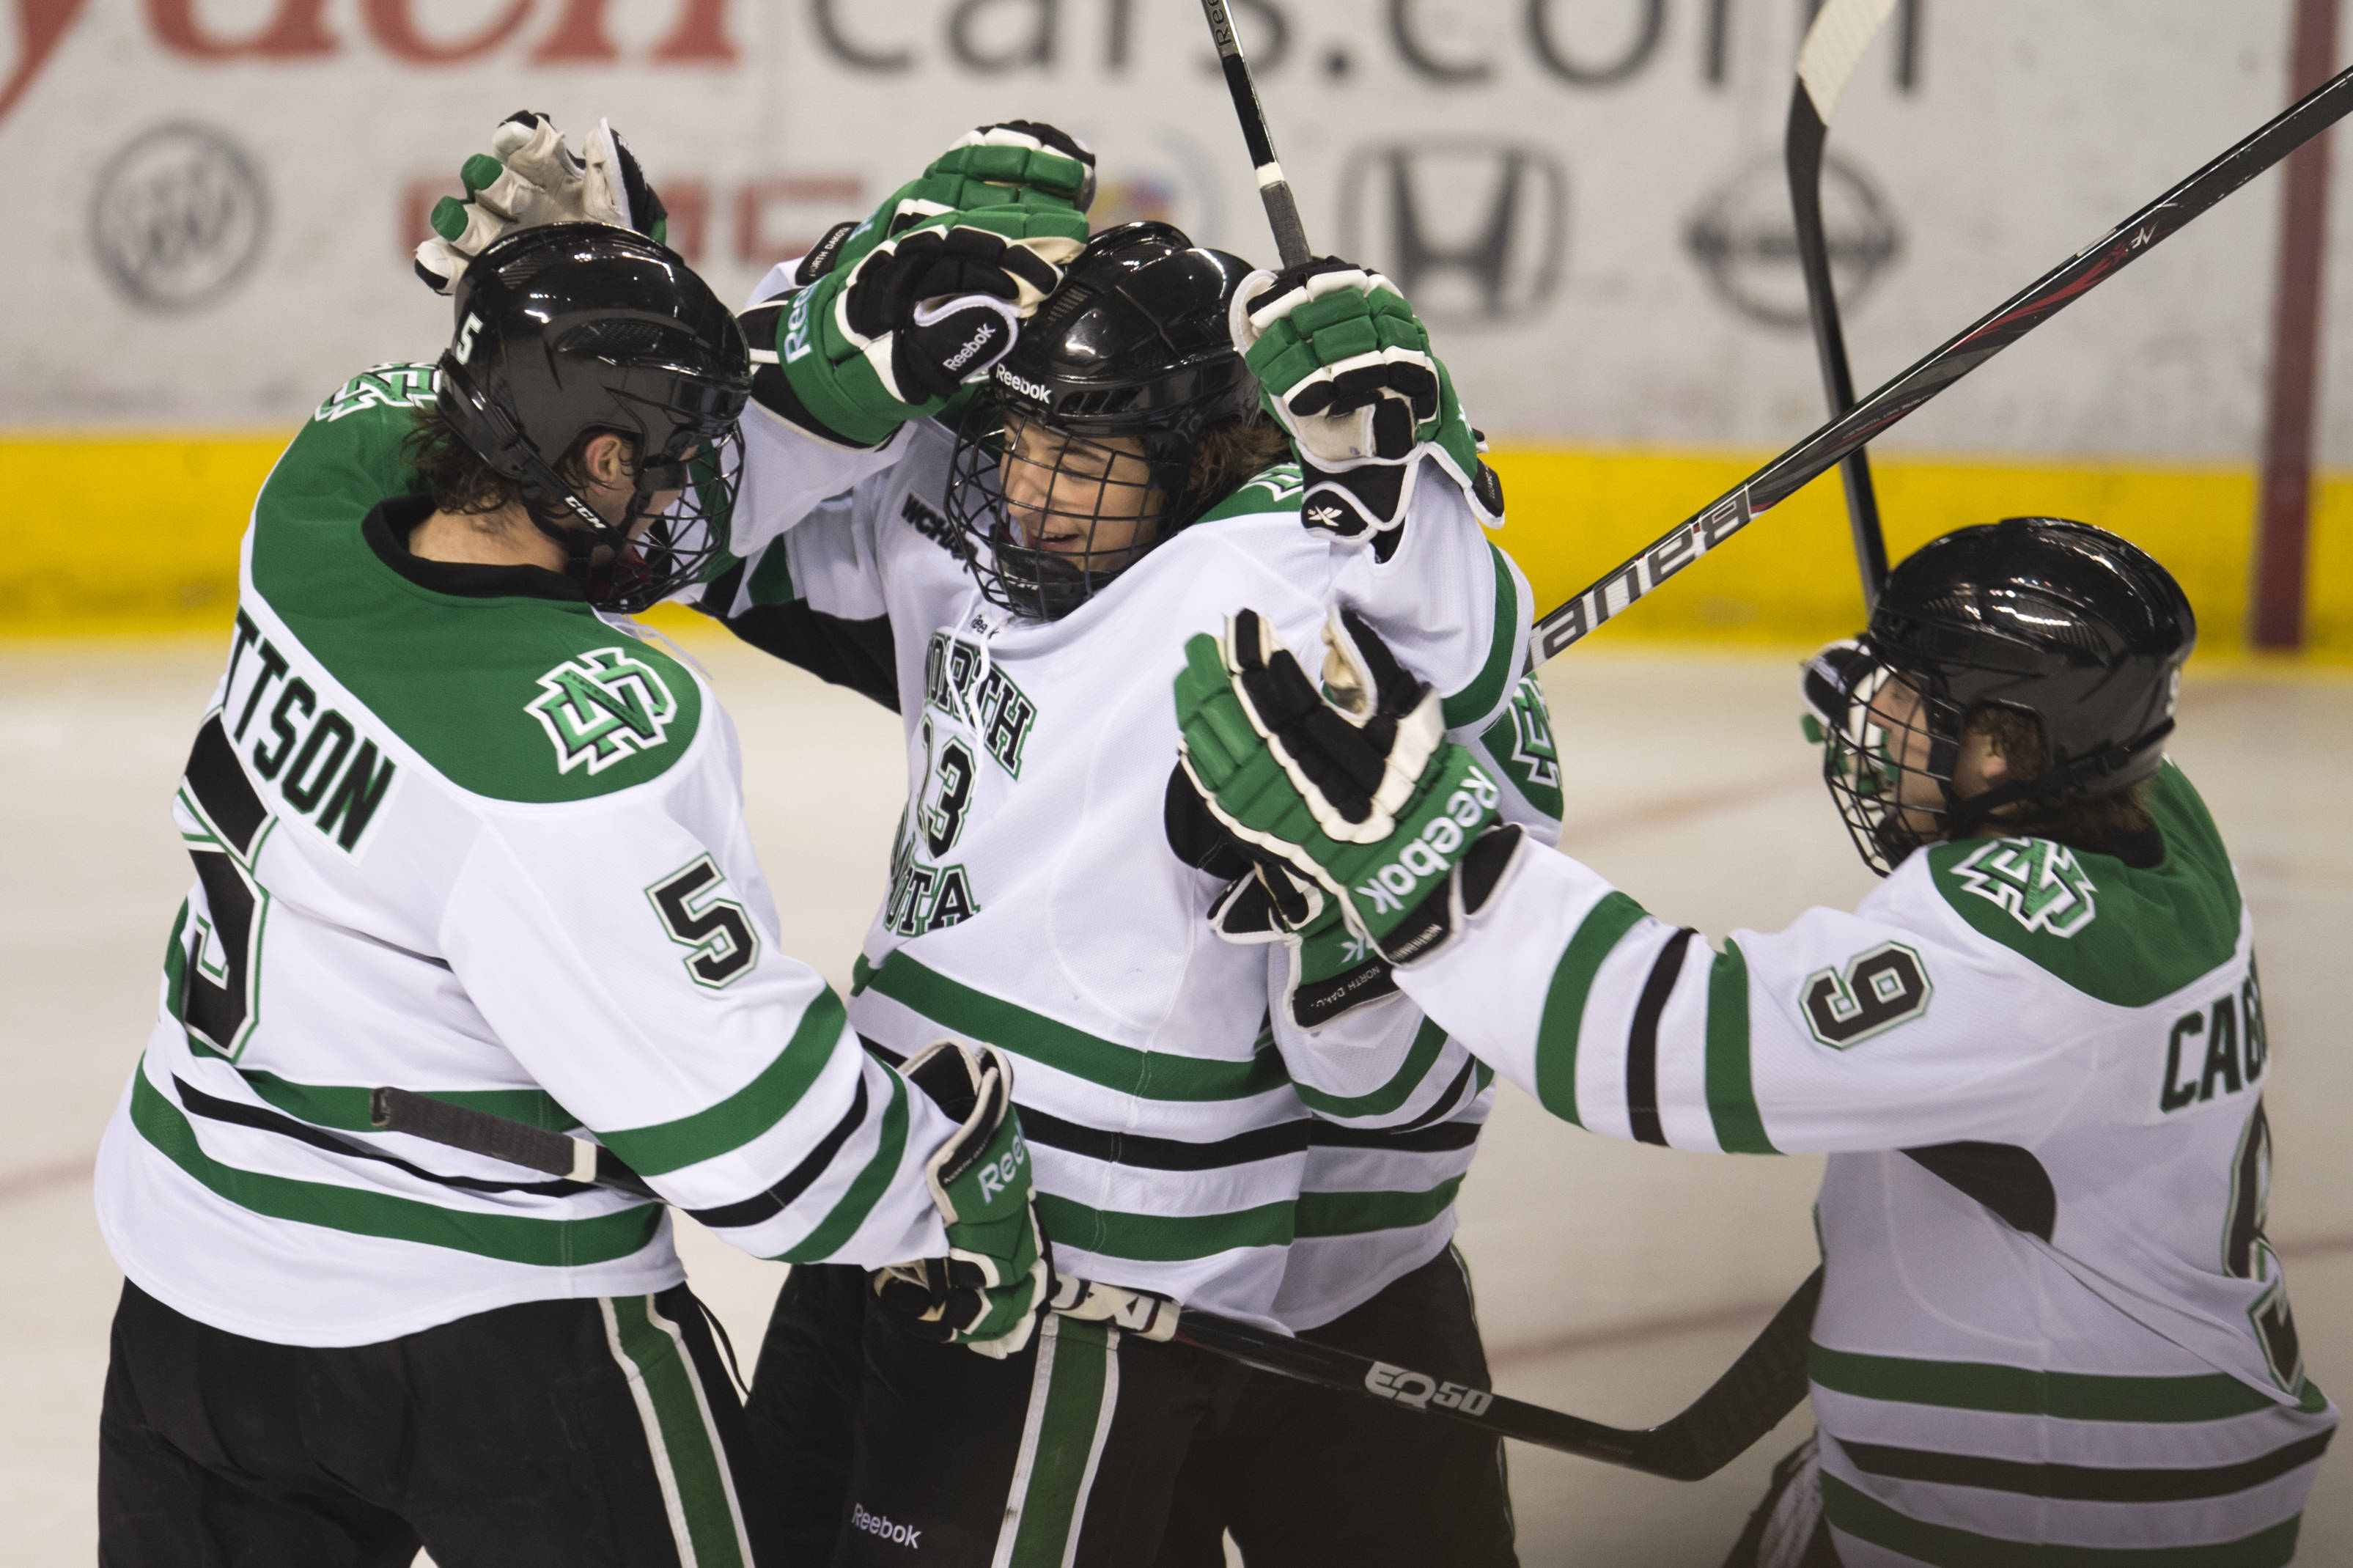 d95949fe5b8 Game Notes  UND travels to first-place SCSU - University of North ...